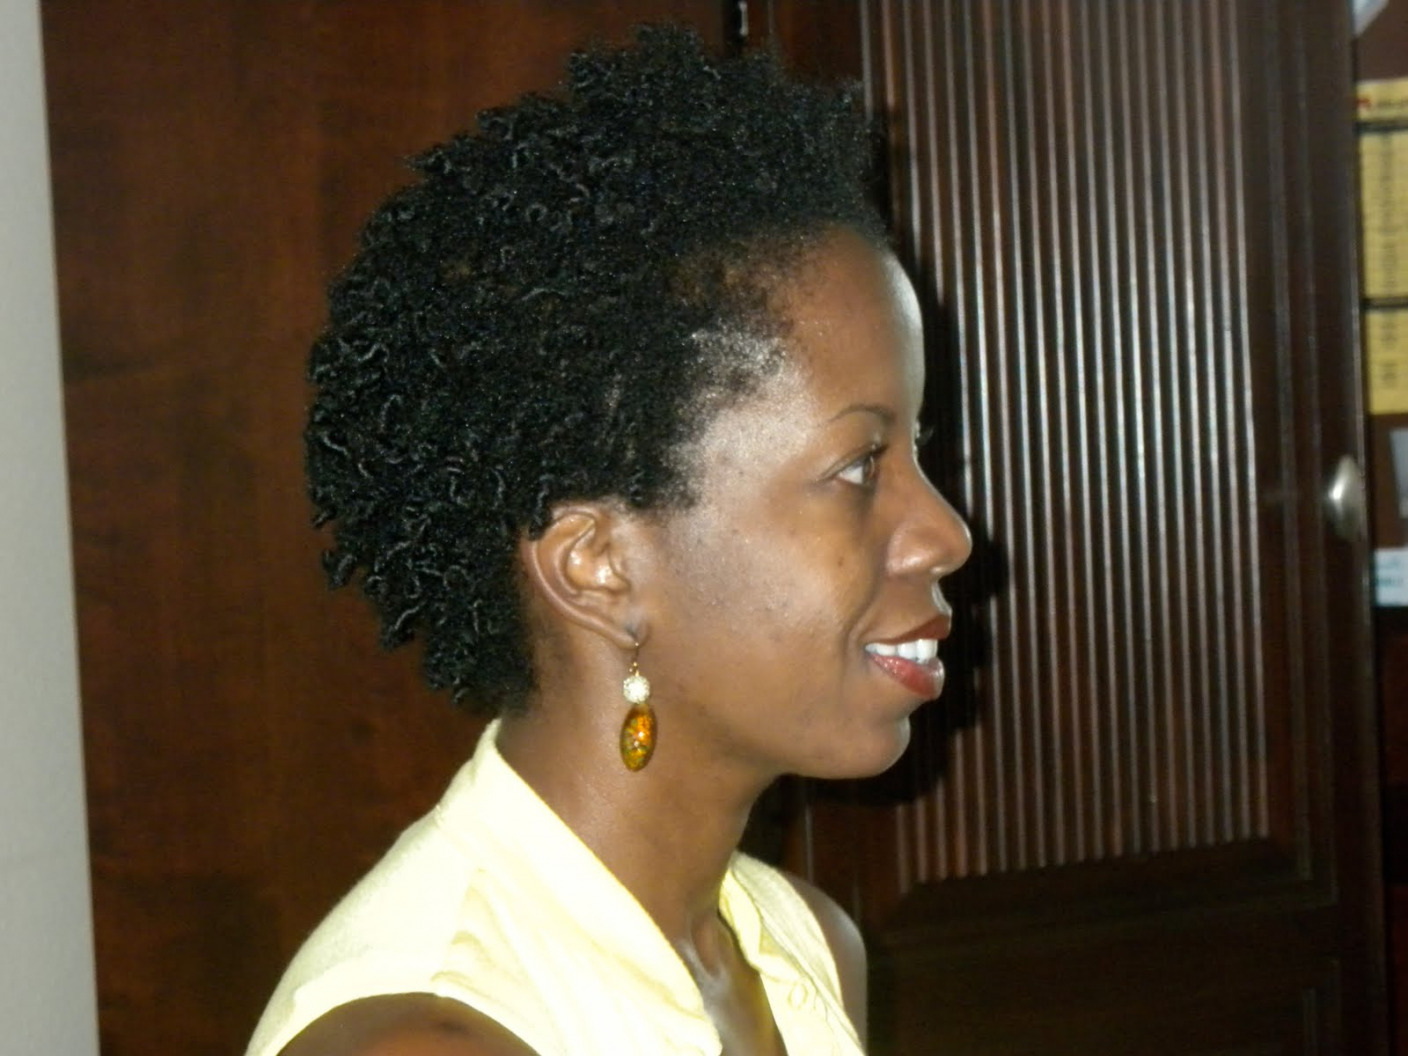 Groovy Short Natural Hairstyles For Black Women (Gallery 17 of 20)